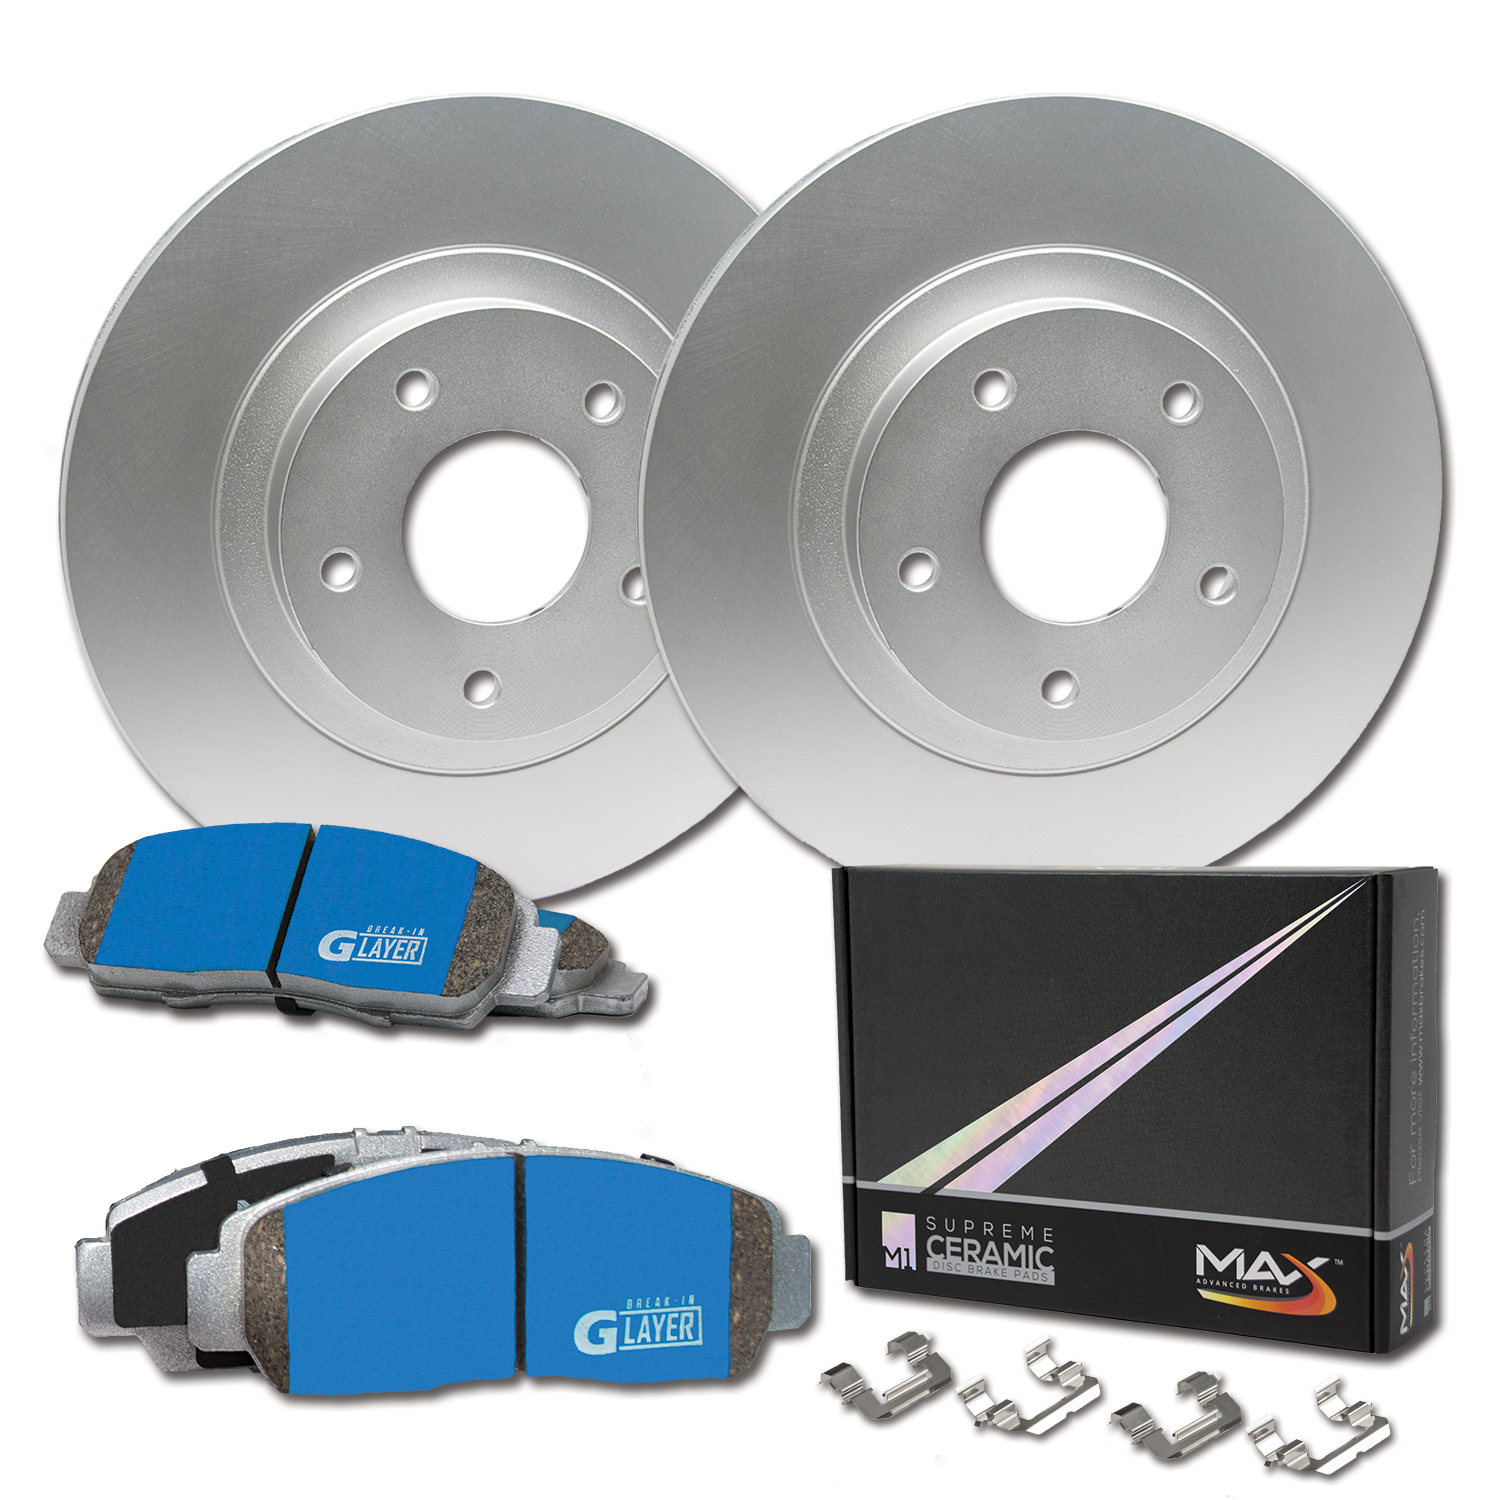 Rear 2004 2005 2006 Chevy Optra Rotors w//Ceramic Pads OE Brakes